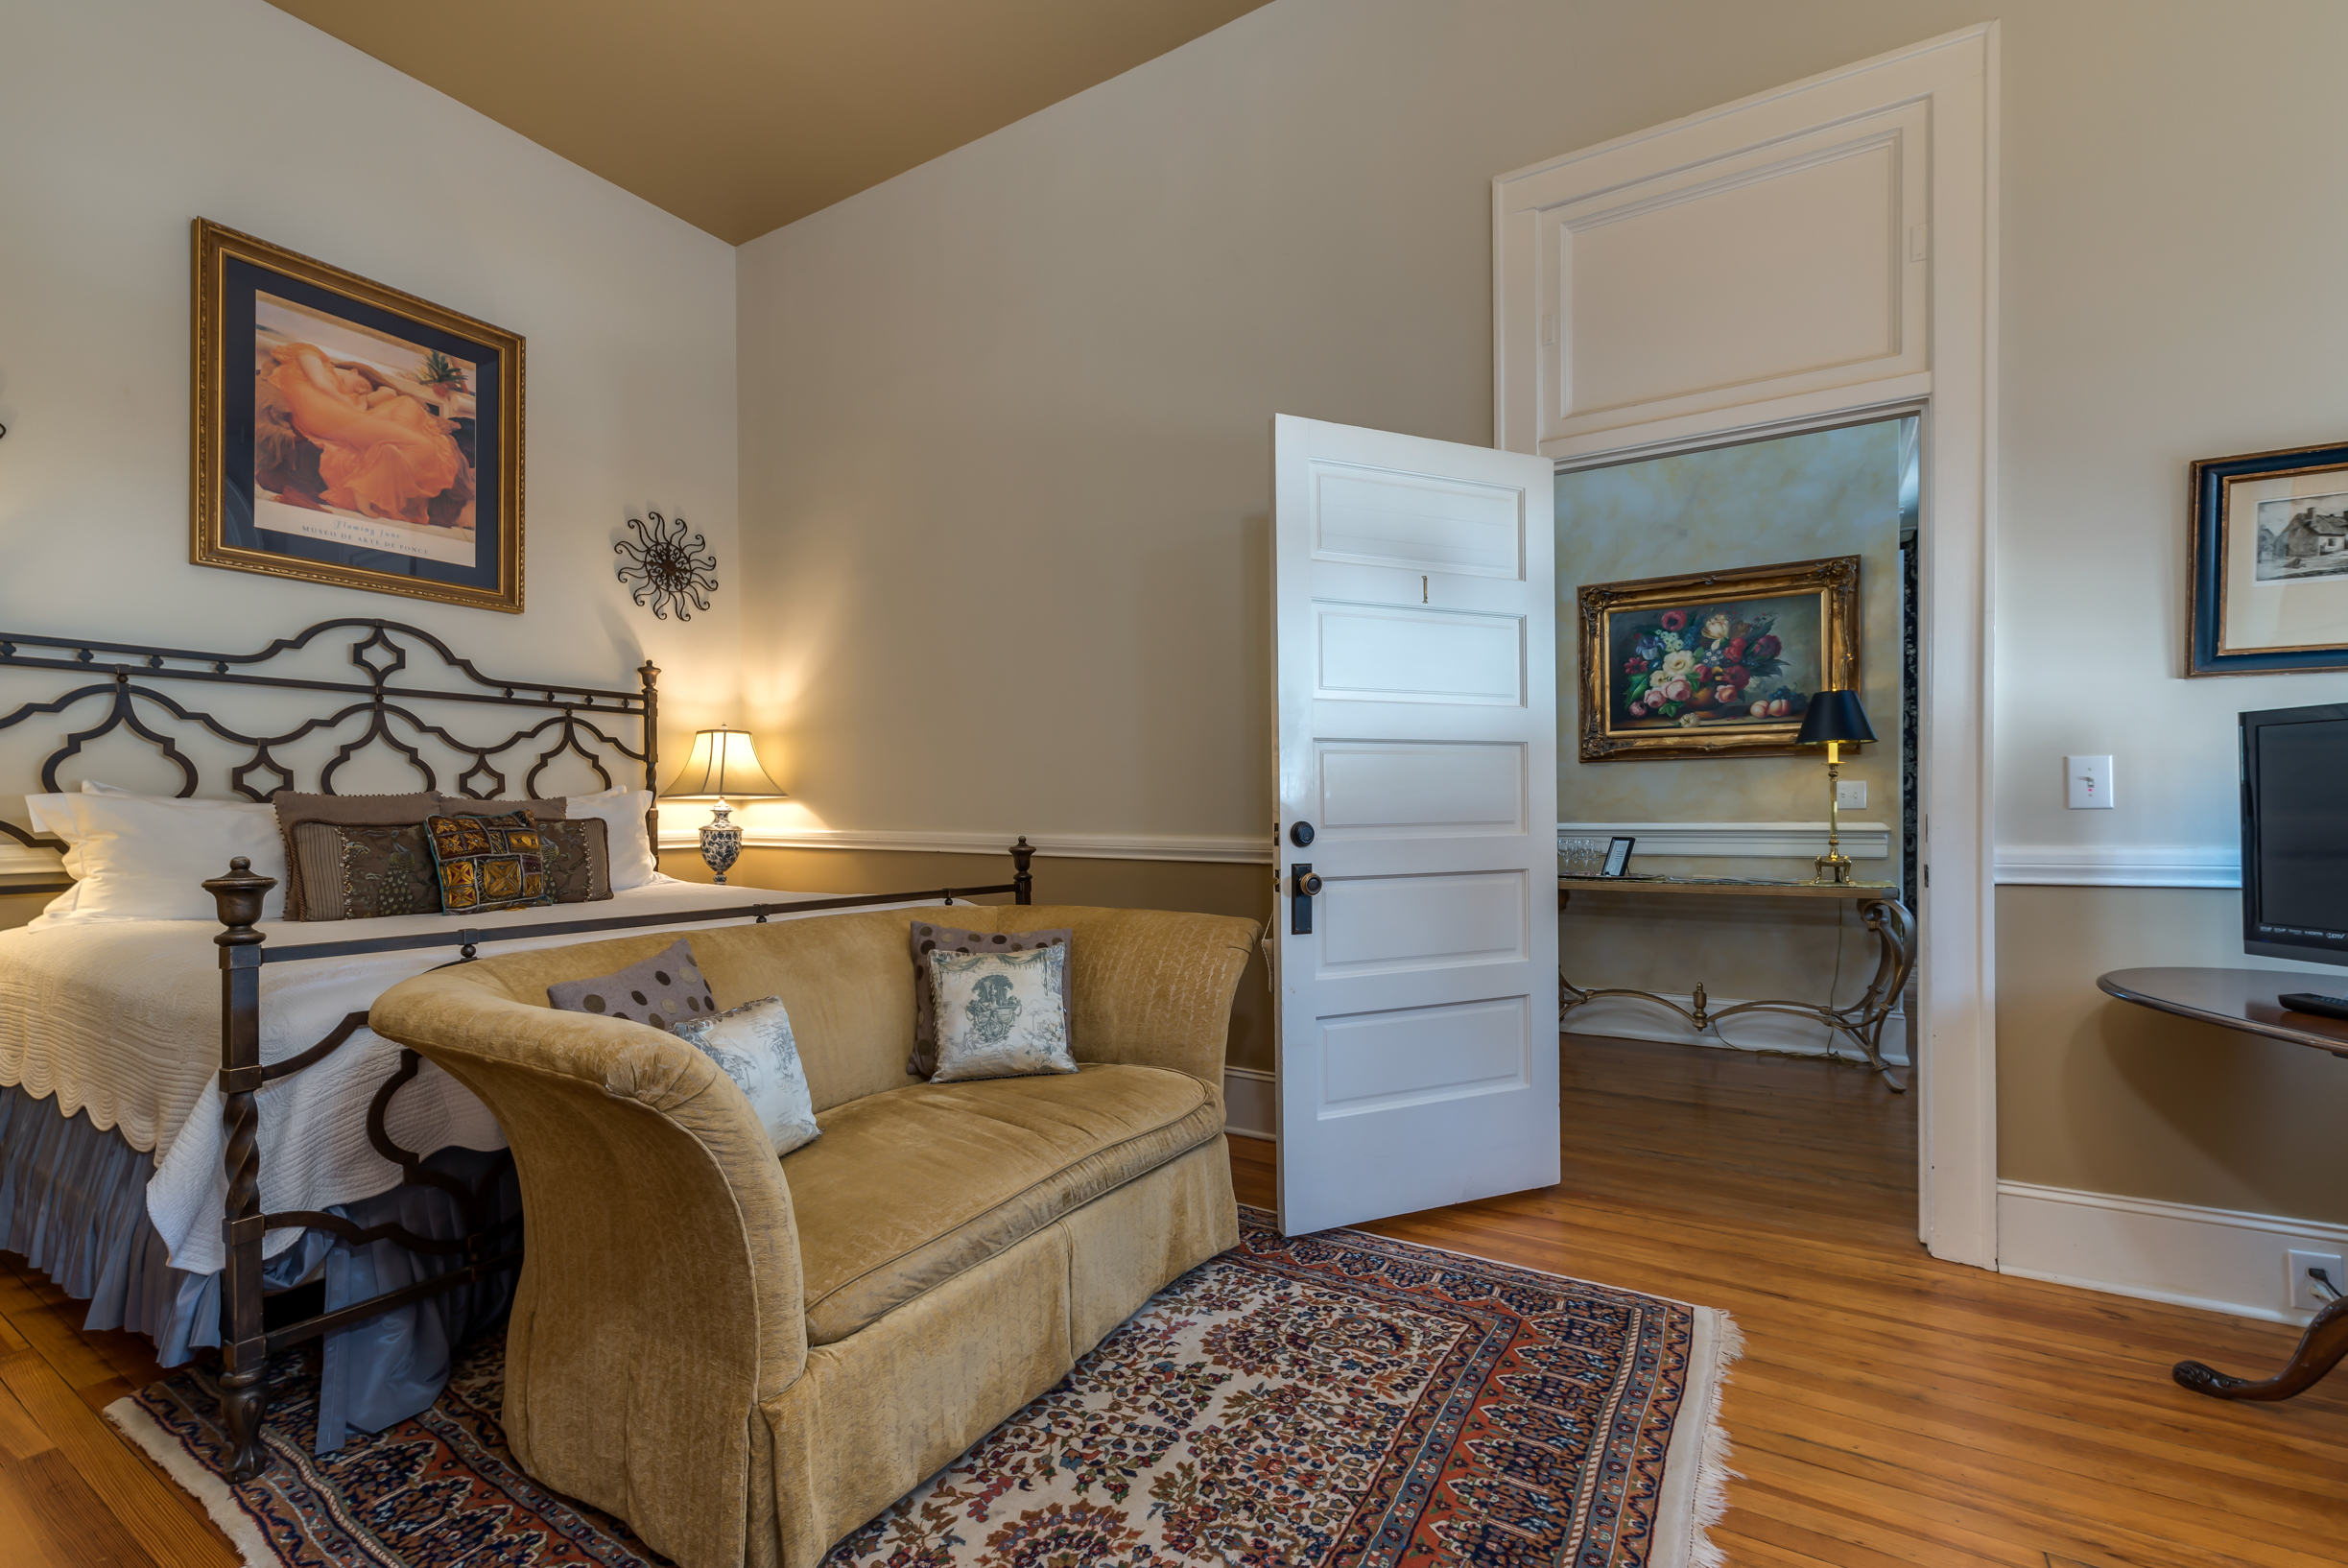 Guest Room with Couch